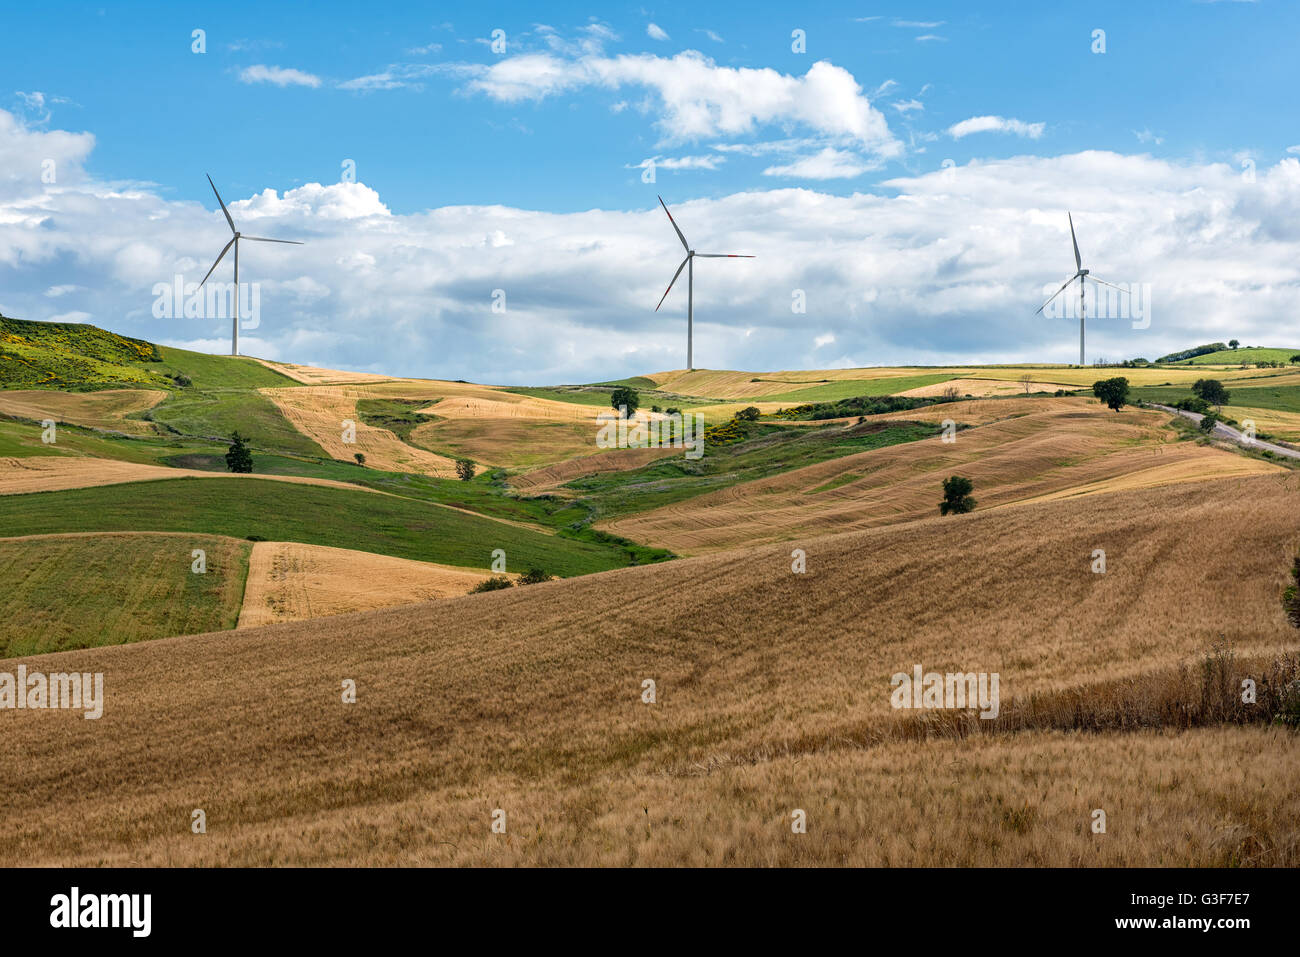 Row of wind turbines in a wind farm on the hilltops viewed across rolling agricultural land in a concept of alternative - Stock Image